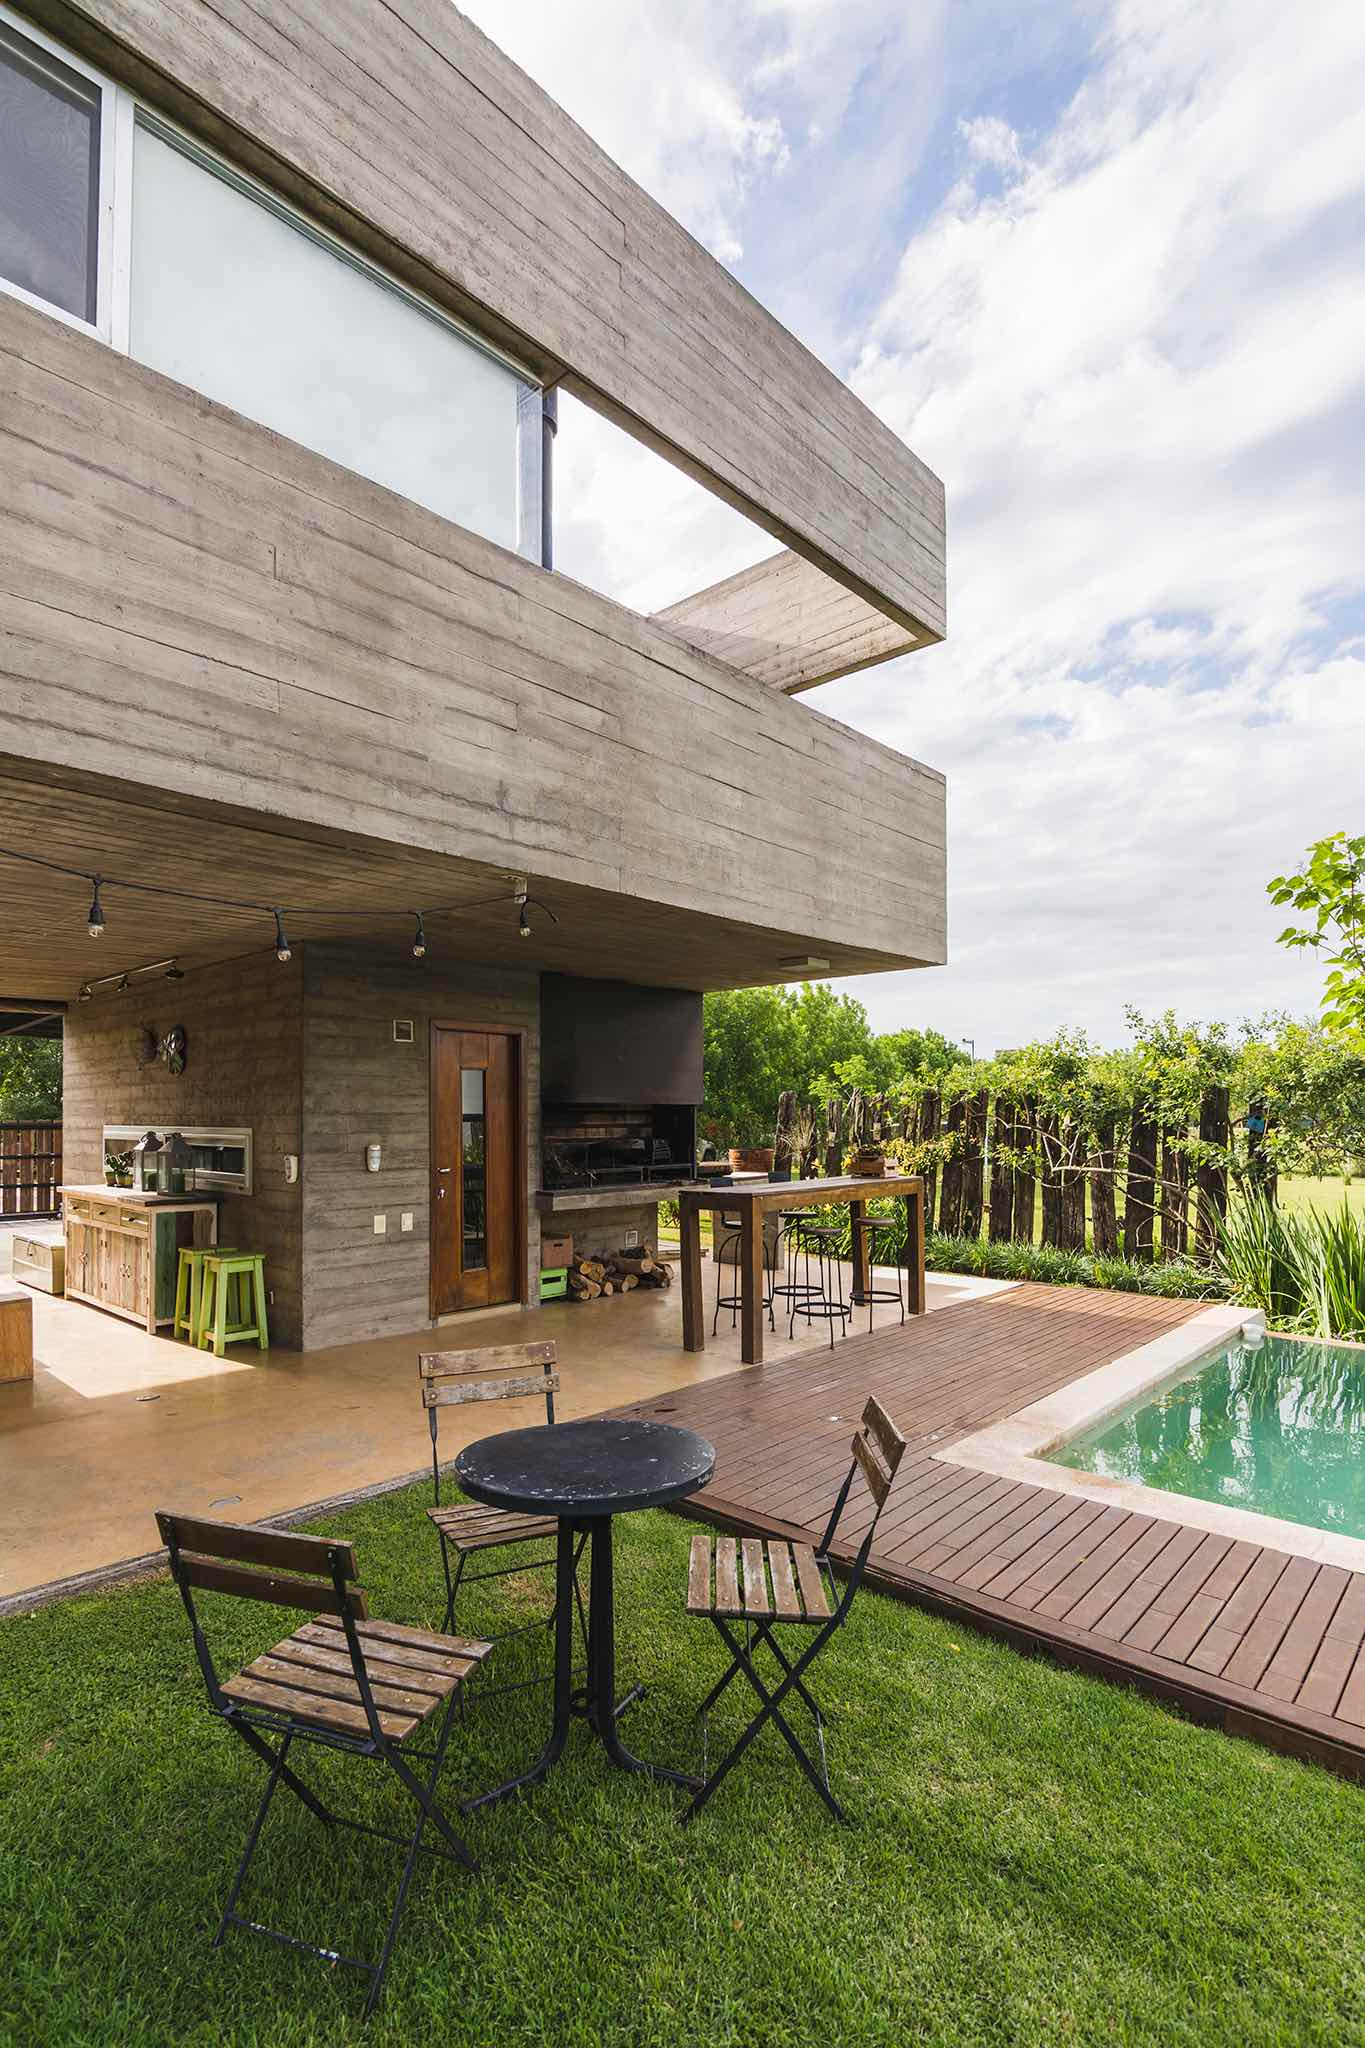 KM house designed by Estudio Pablo Gagliardo